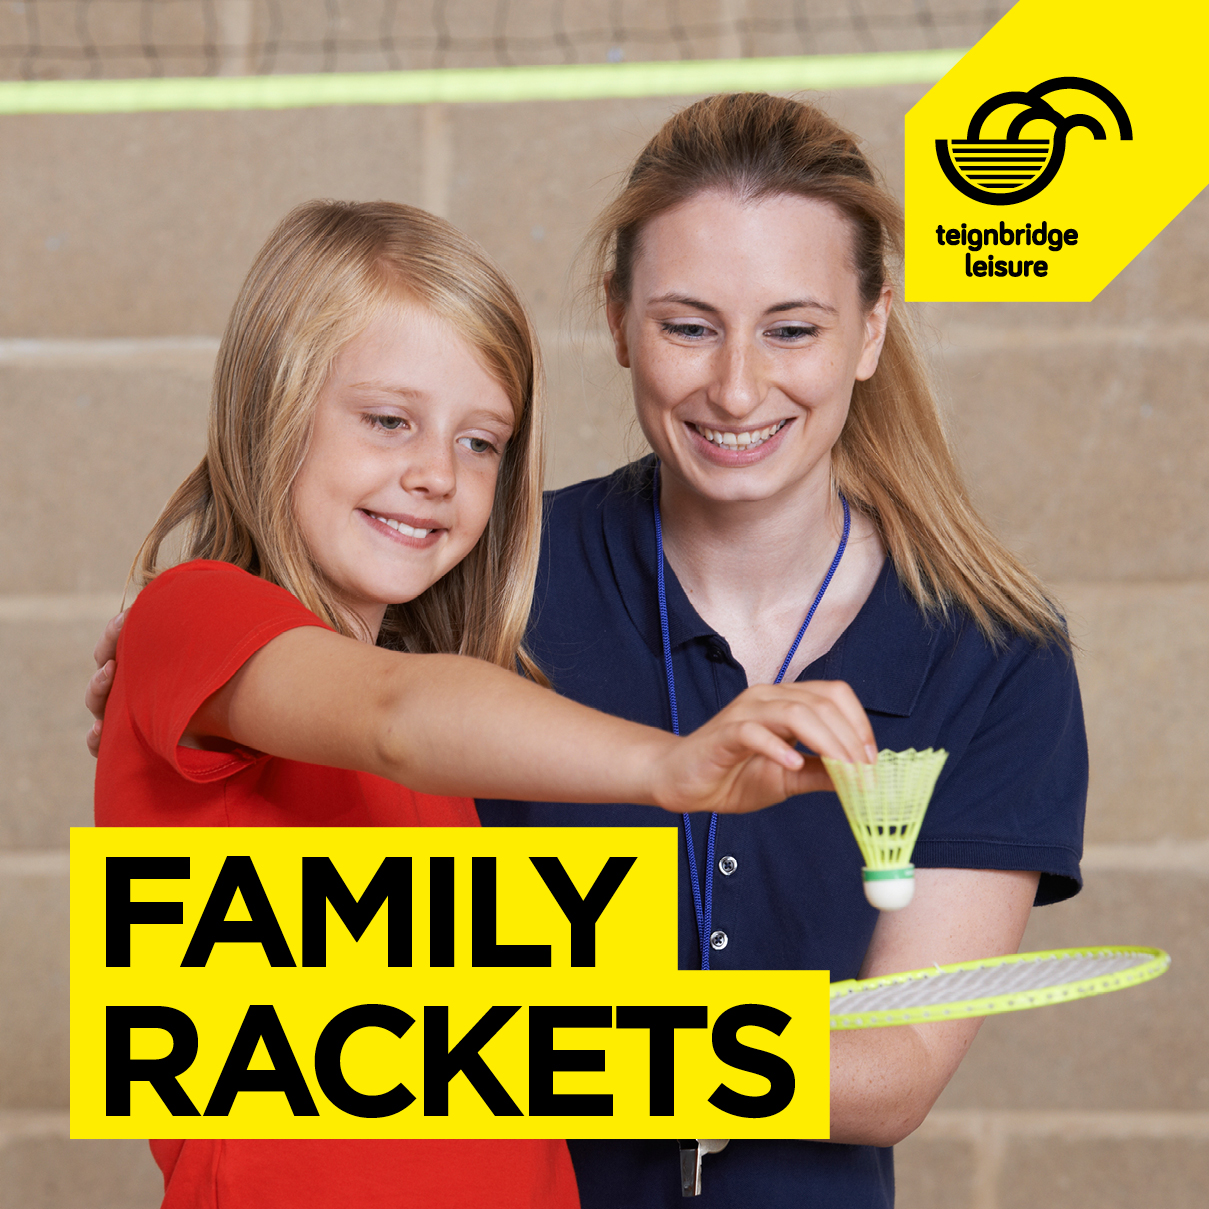 Family Rackets and Racket Sports